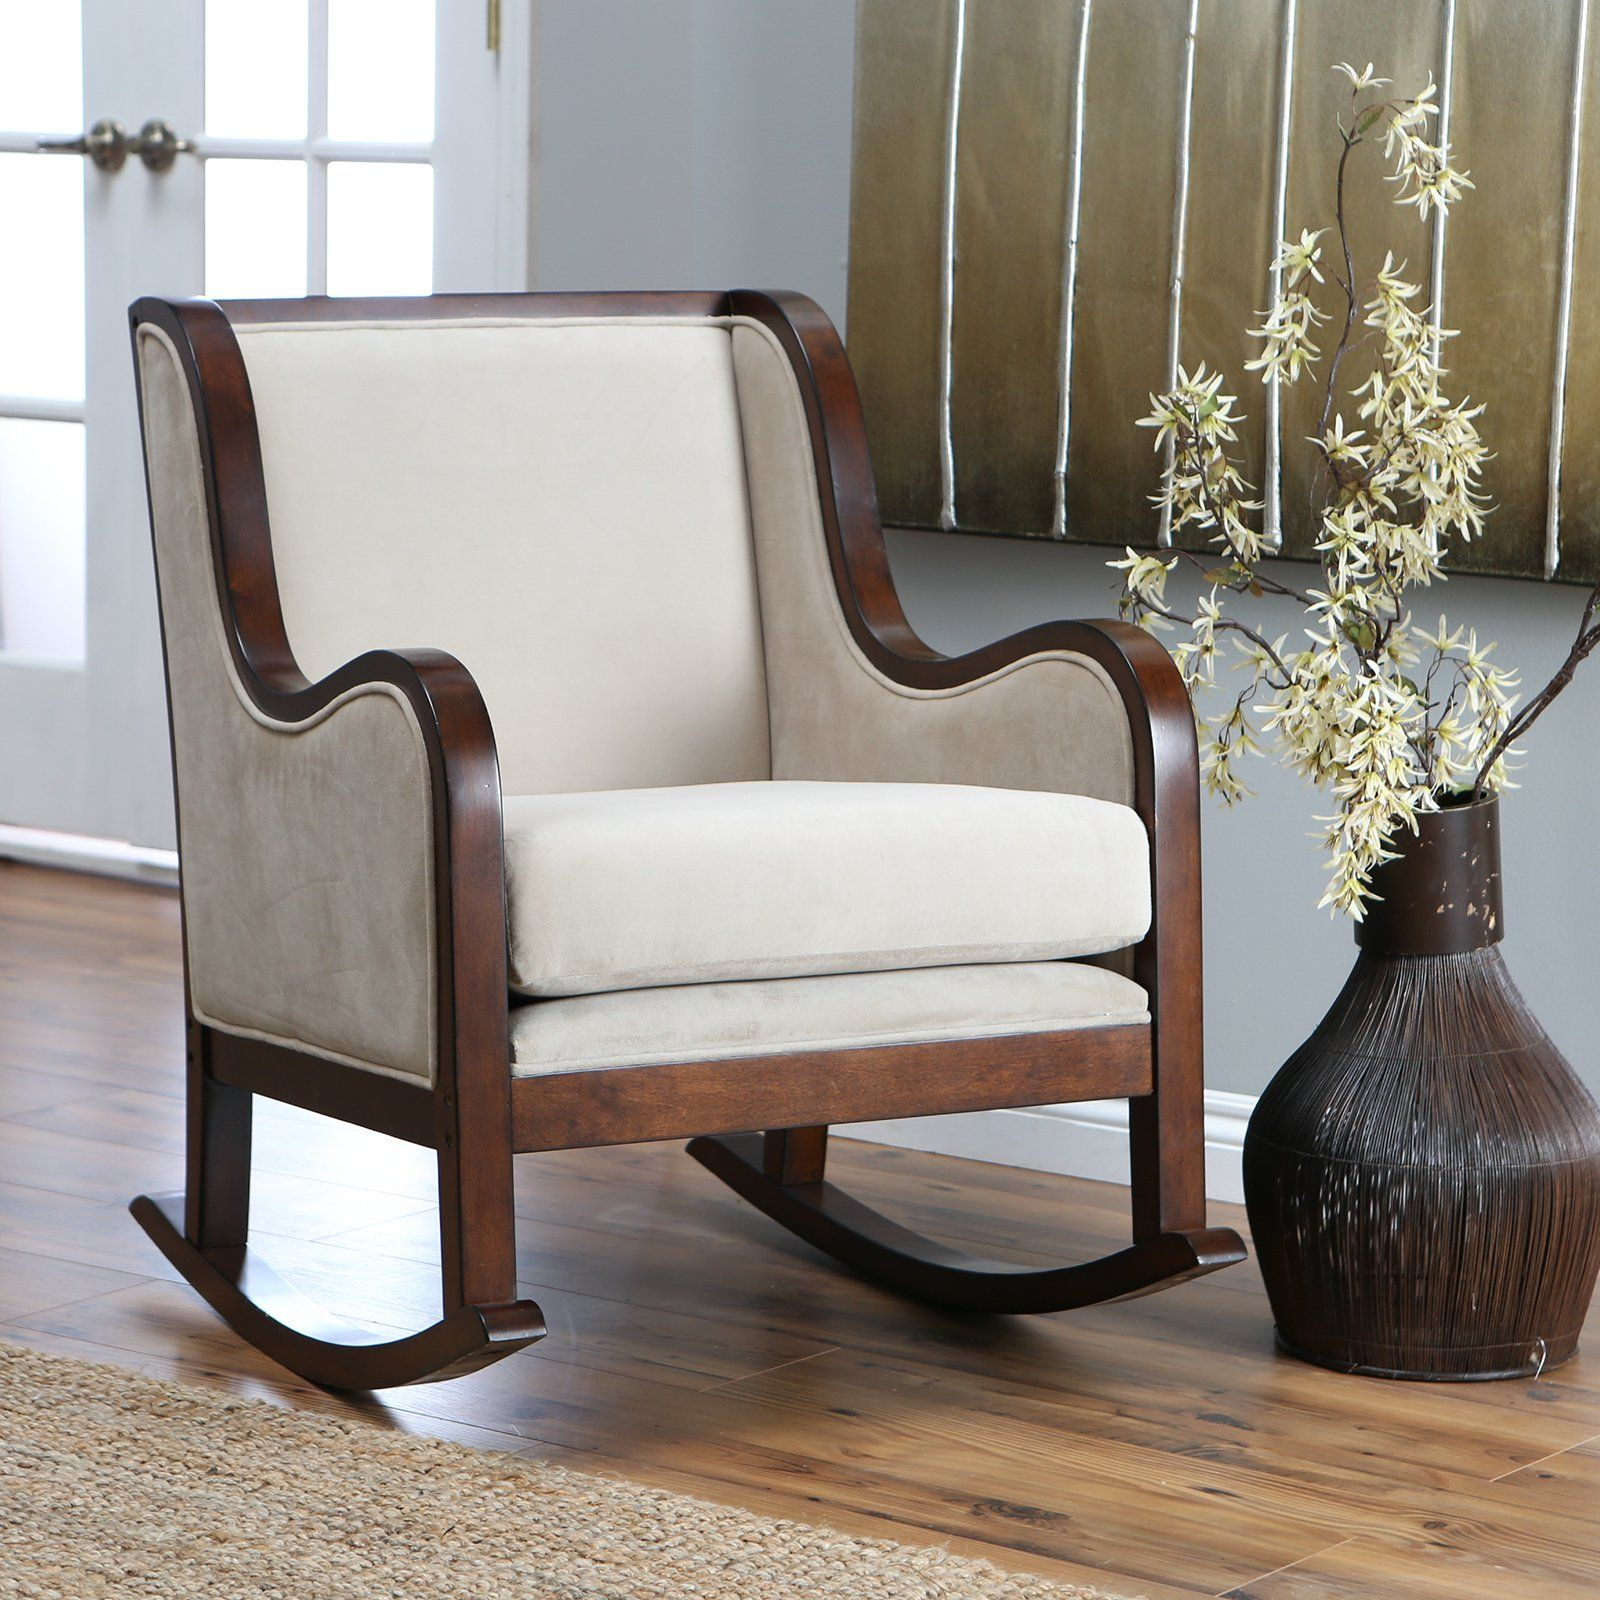 Indoor Wooden Rocking Chairs For S Home Design Ideas